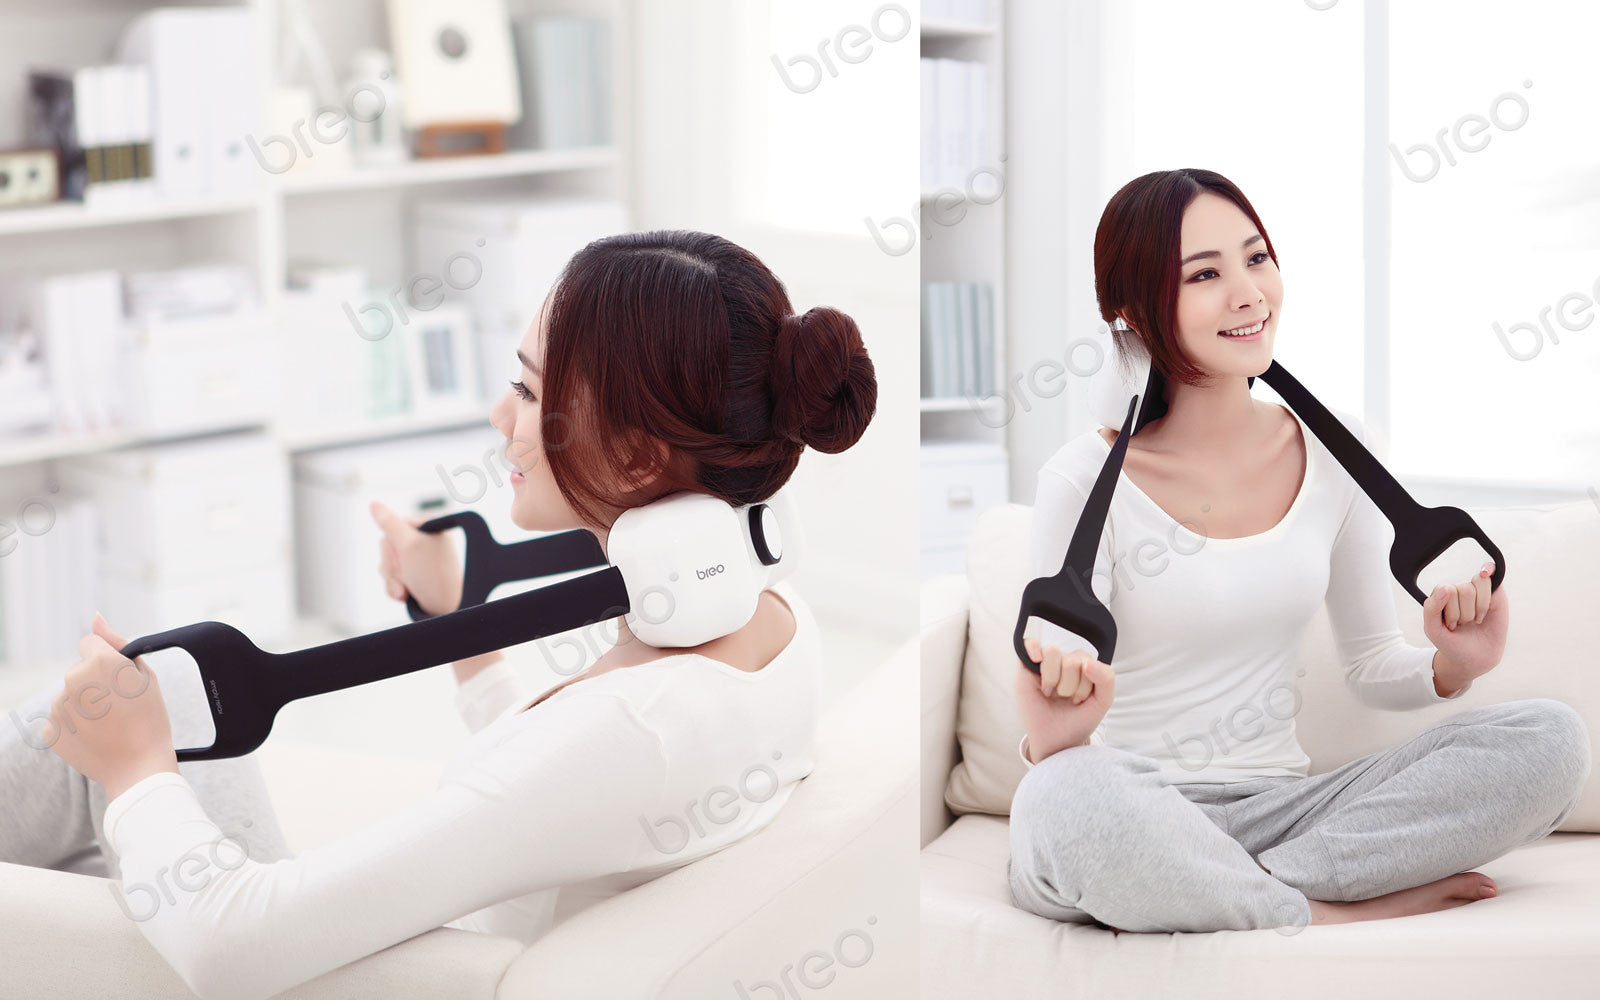 Breo iNeck Neck Massager - Breo-USA